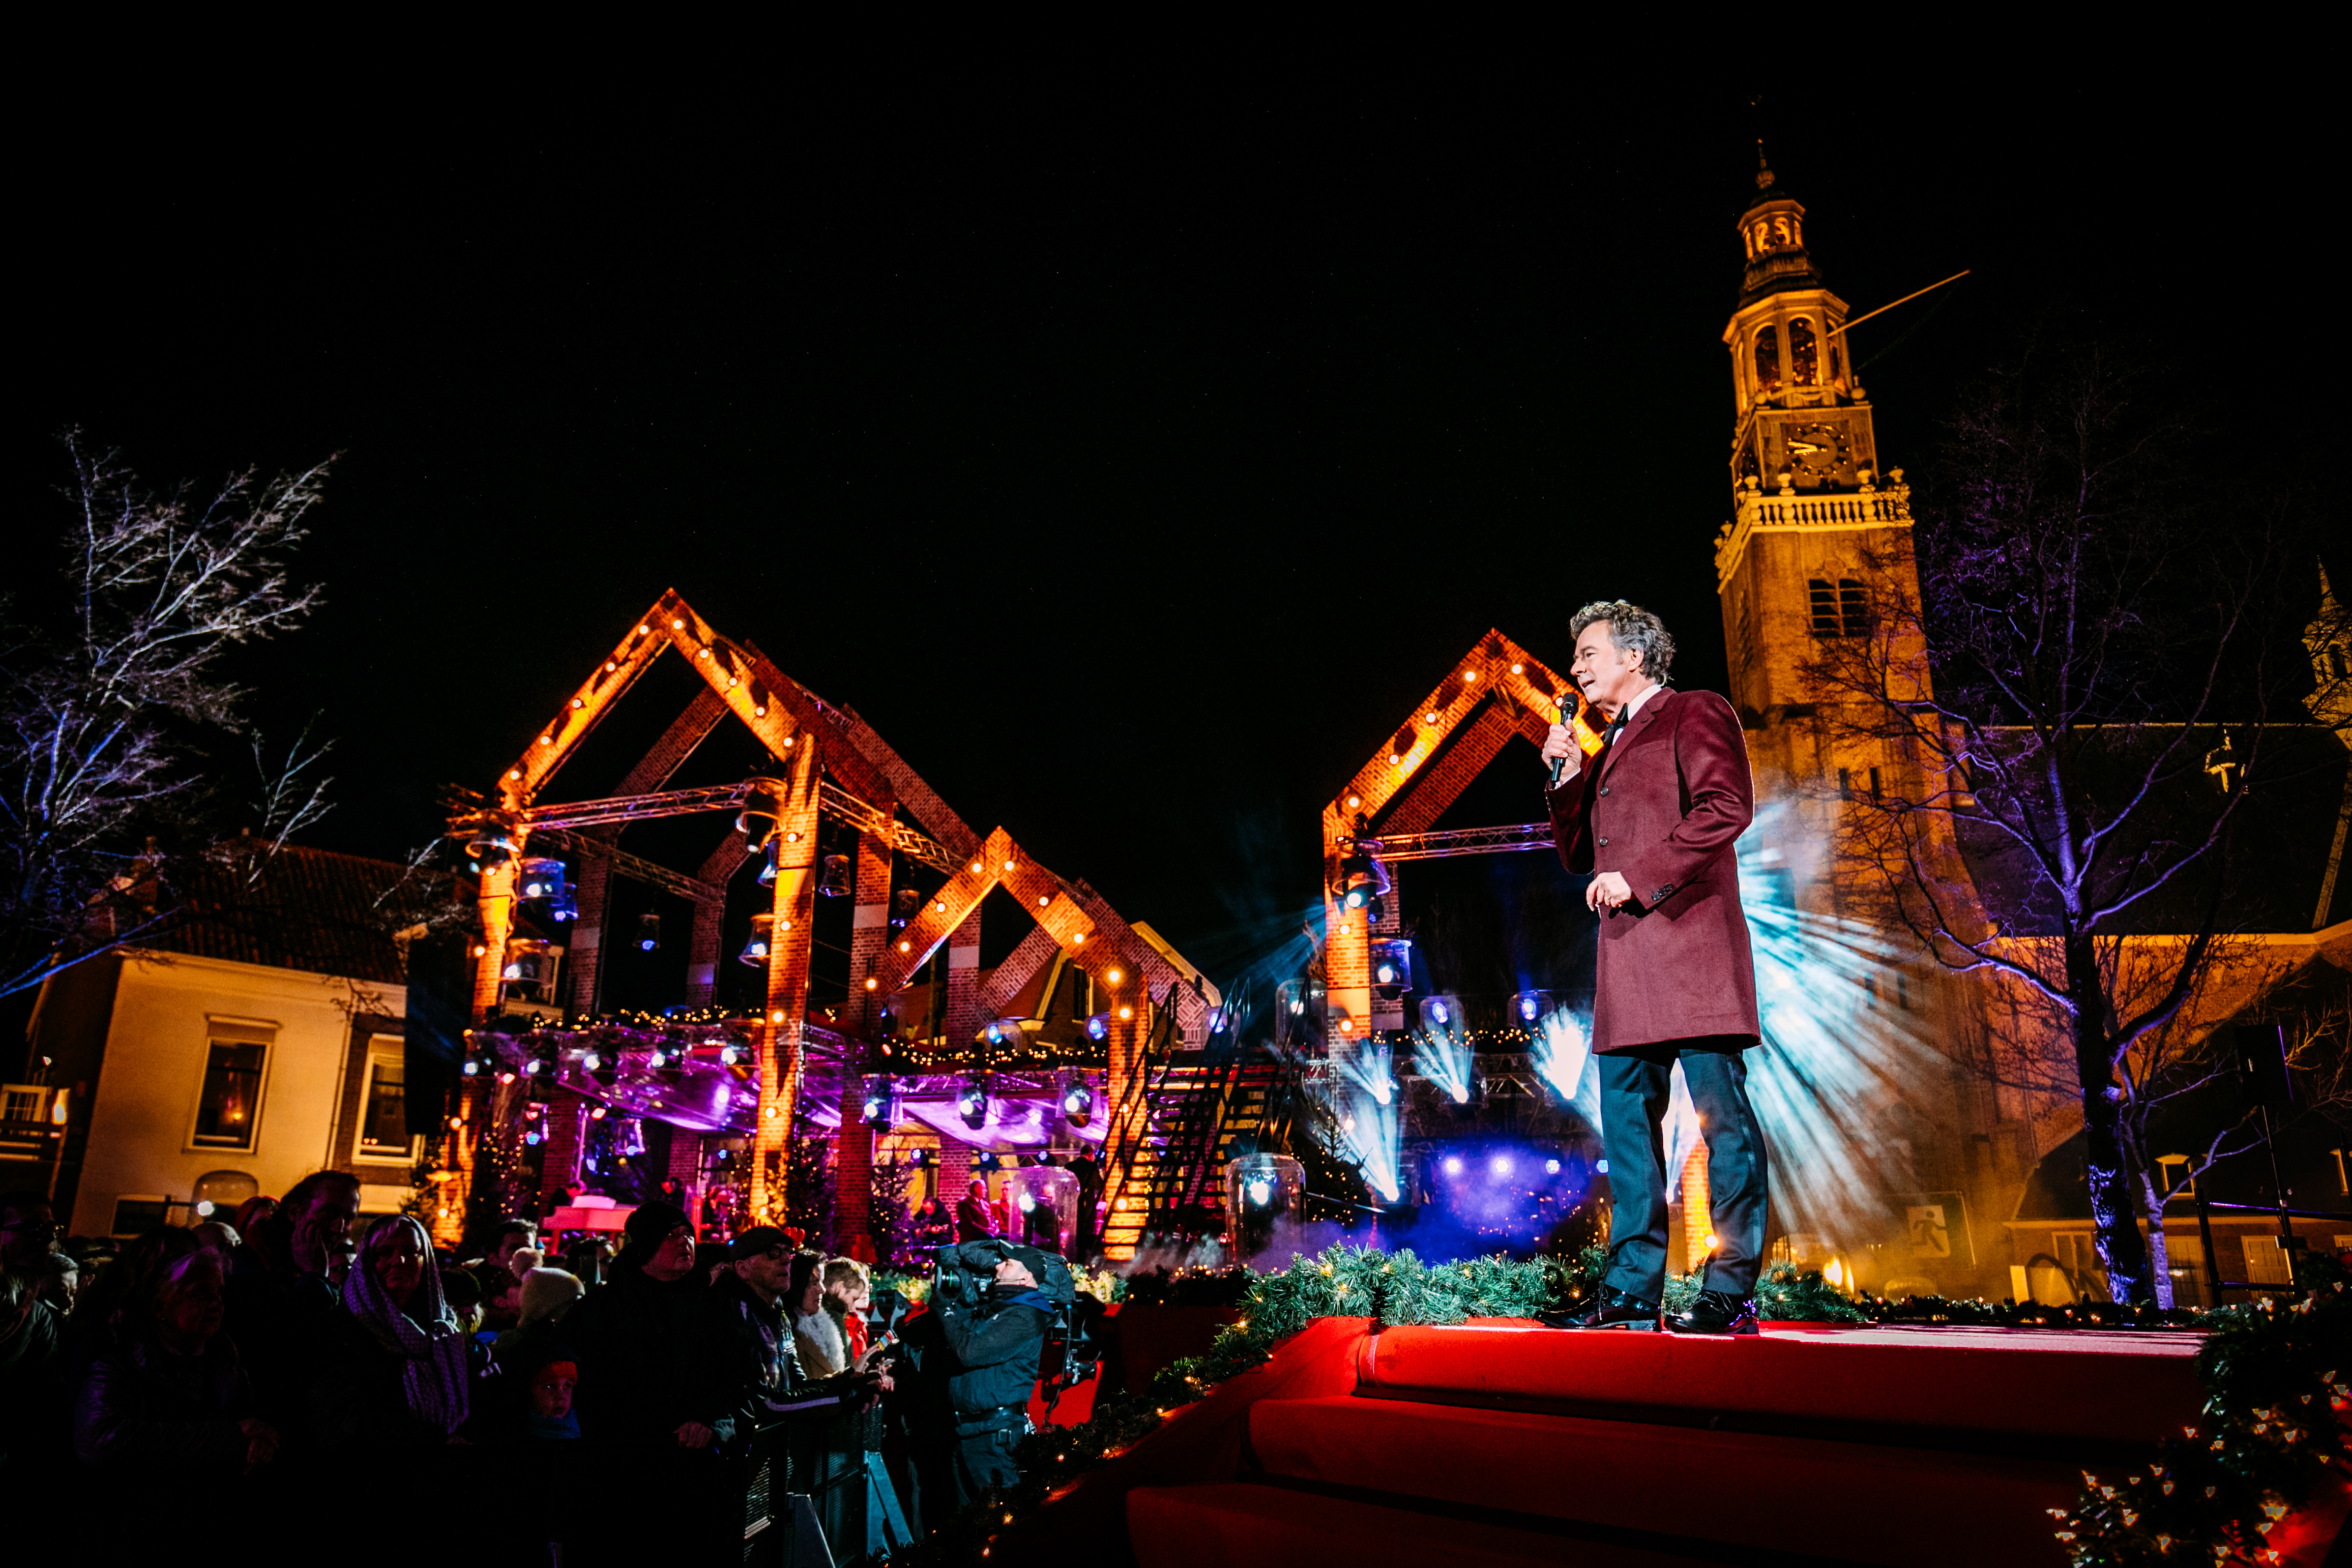 Kerstfeest in de Stad